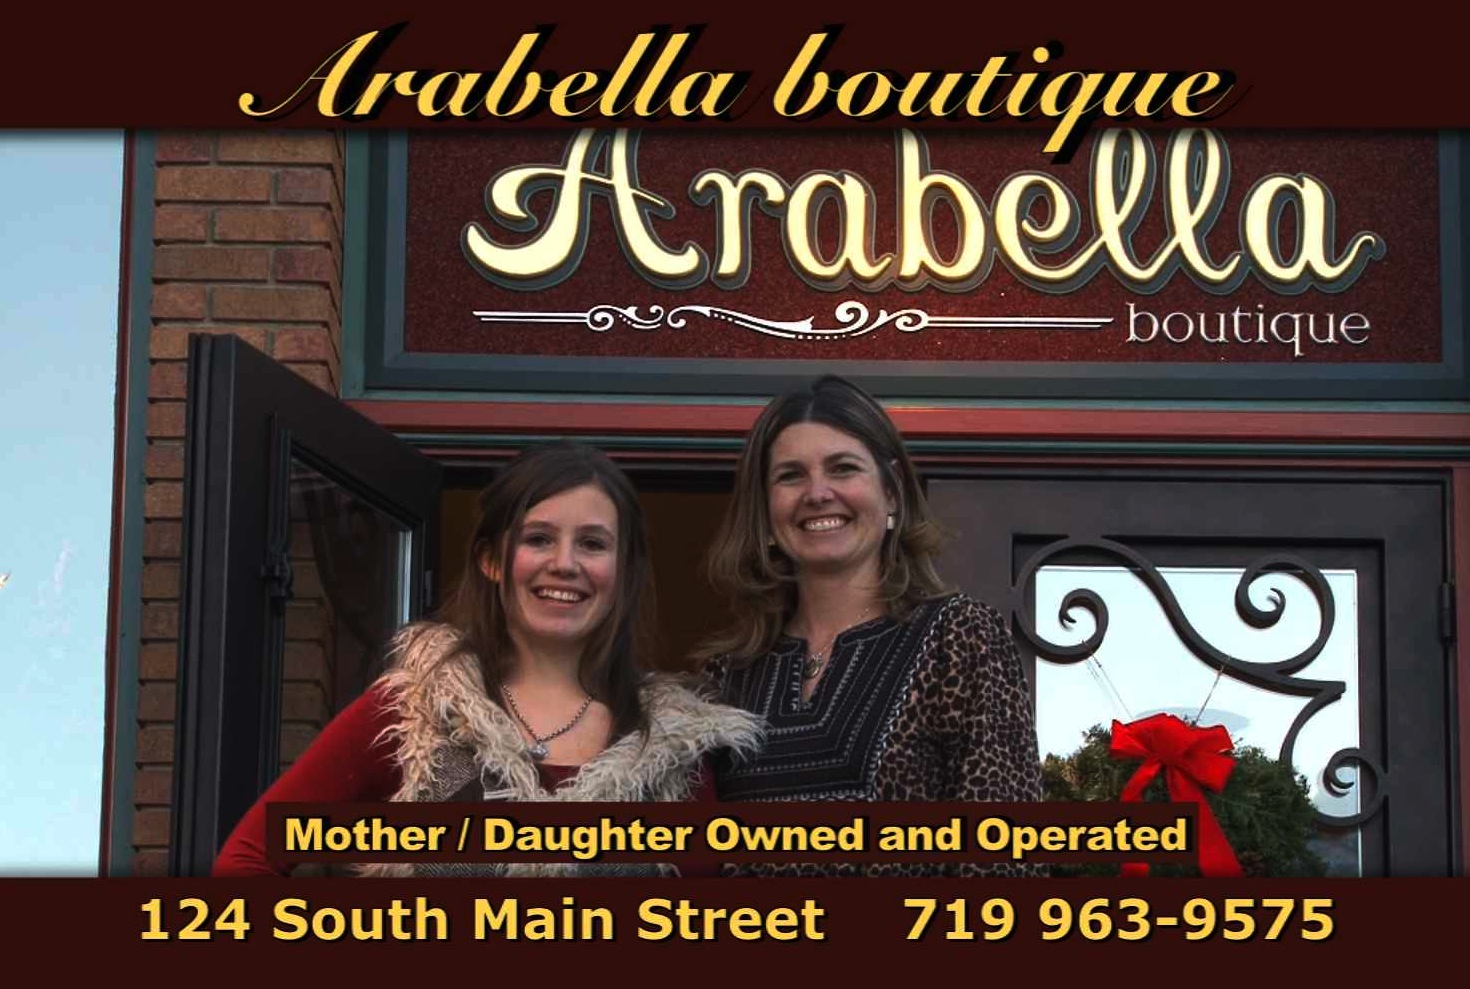 Arabella Boutique